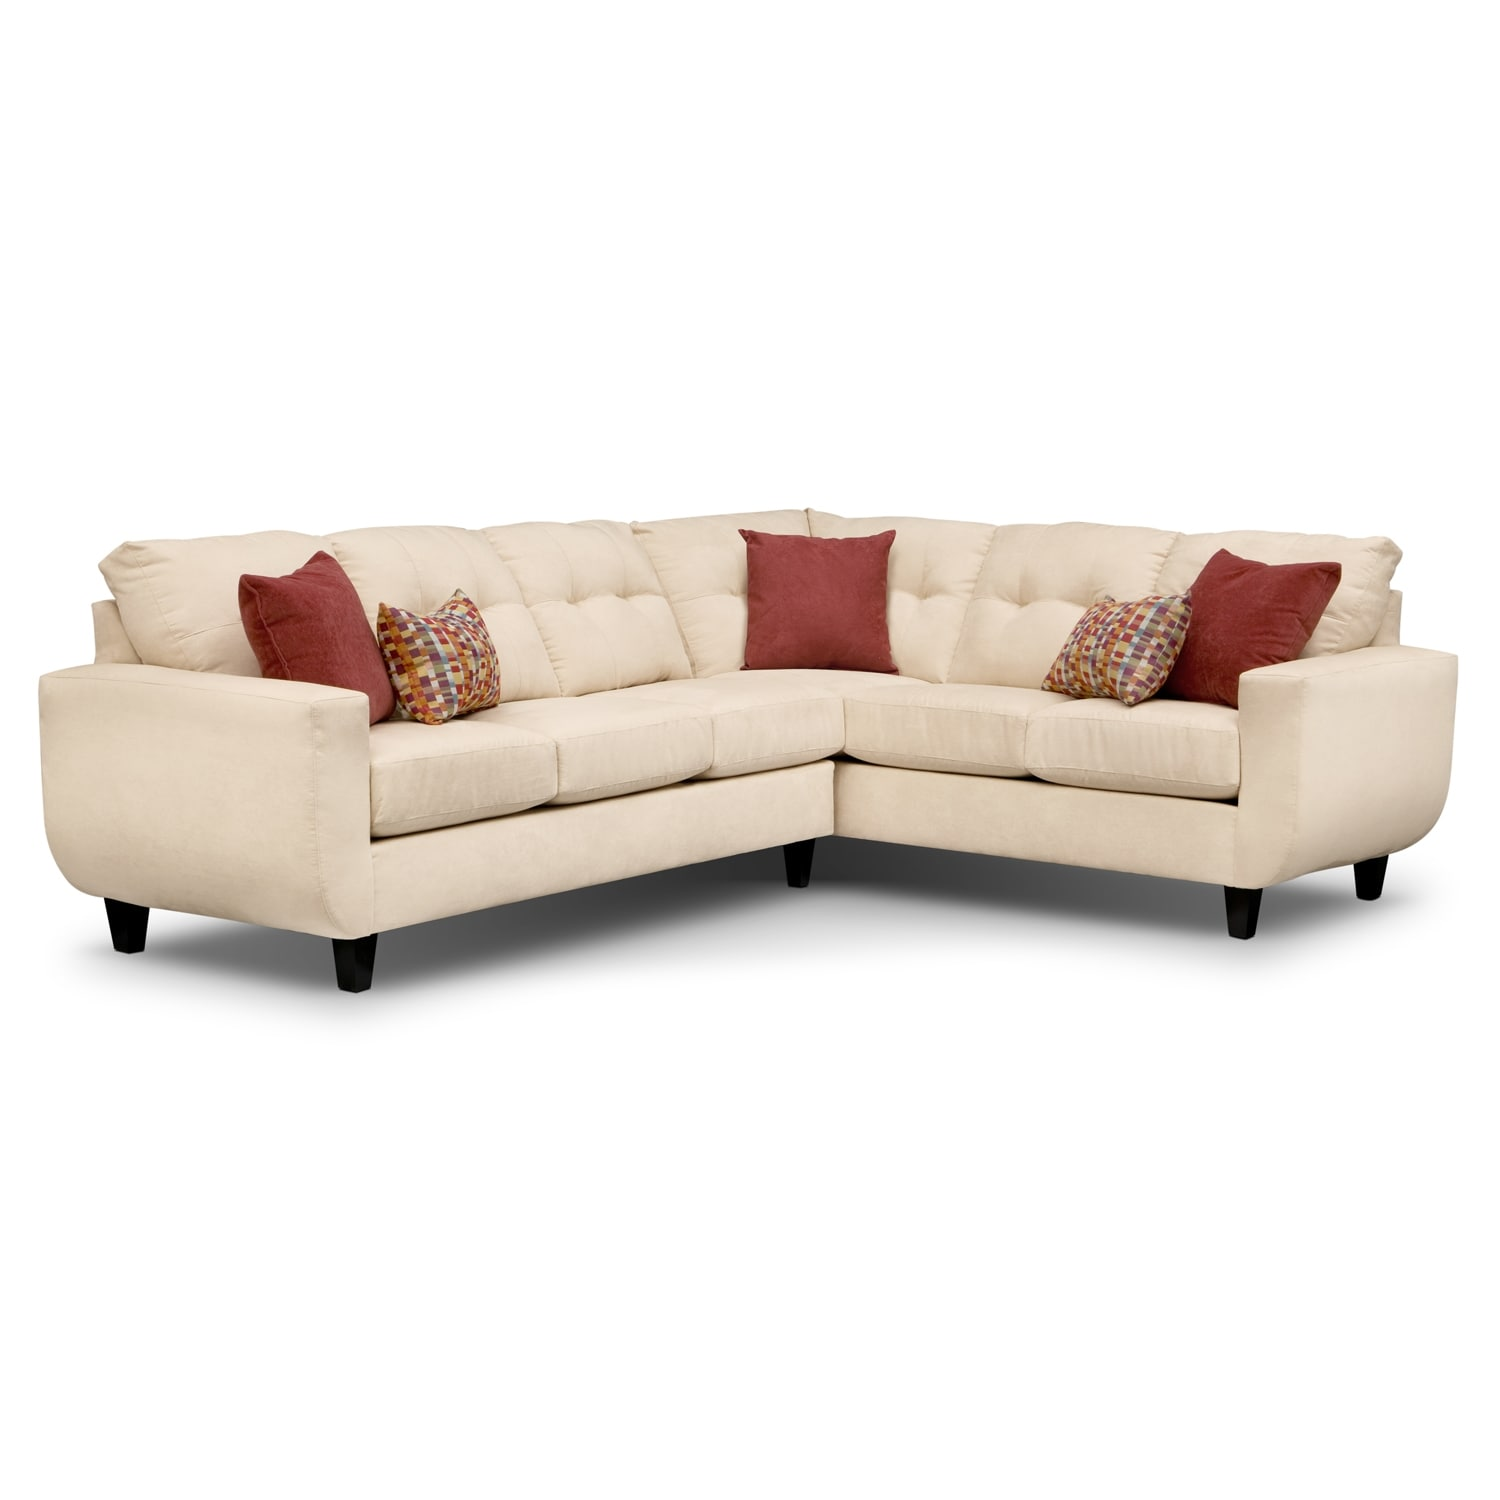 [West Village Cream II 2 Pc. Sectional]